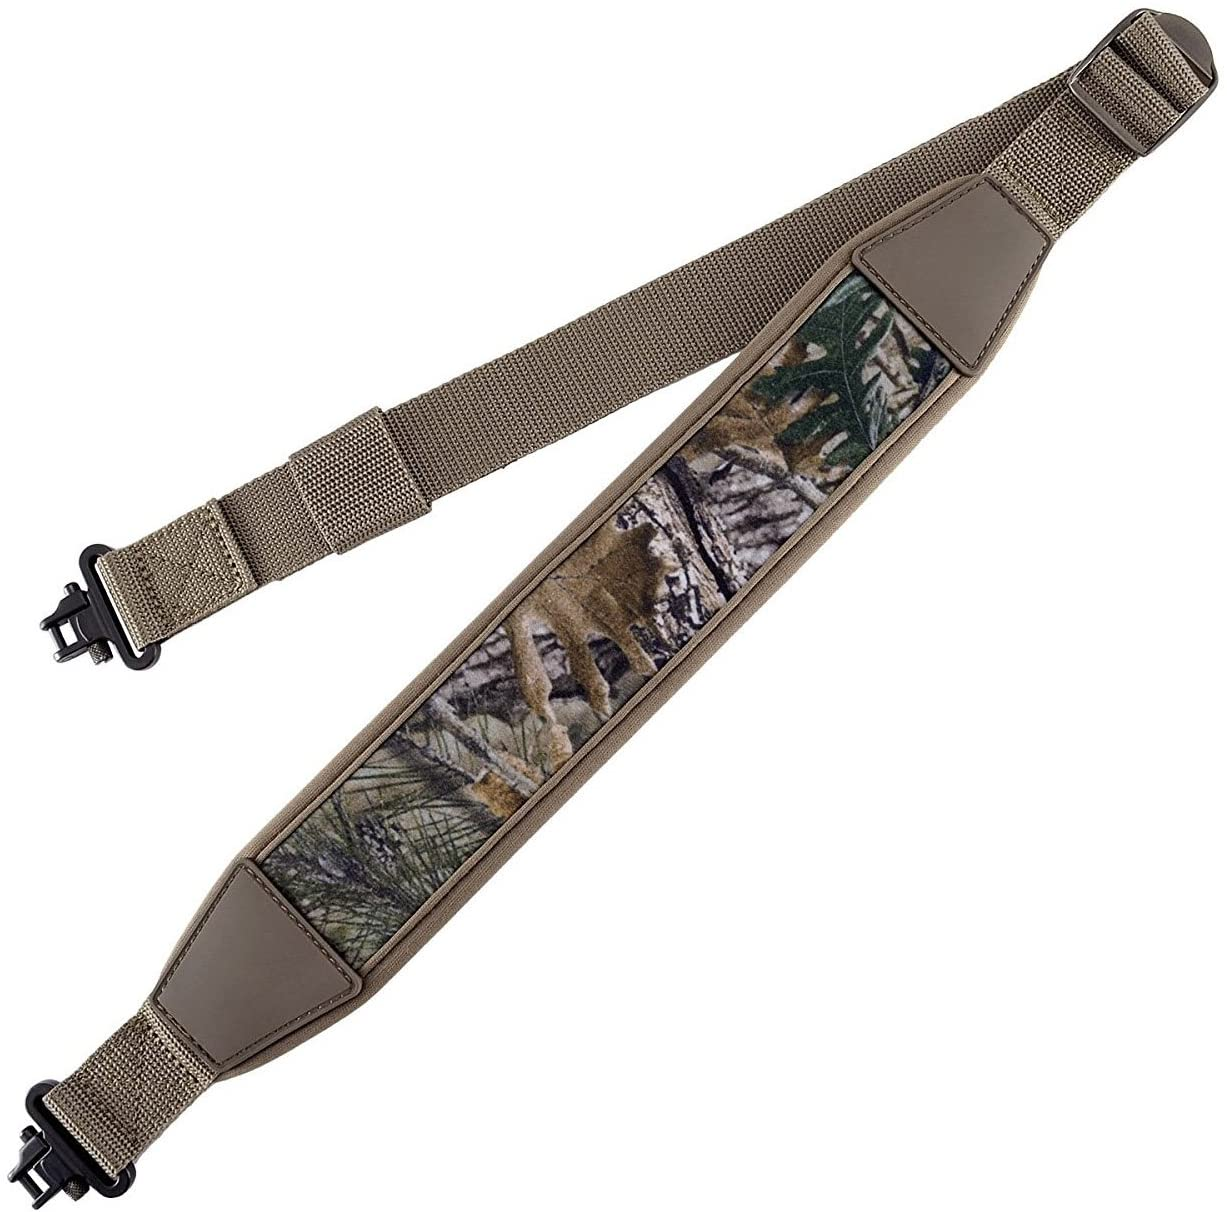 BOOSTEADY Two Point Rifle Gun Sling with Swivels,Durable Shoulder Padded Strap,Length Adjuster : Sports & Outdoors